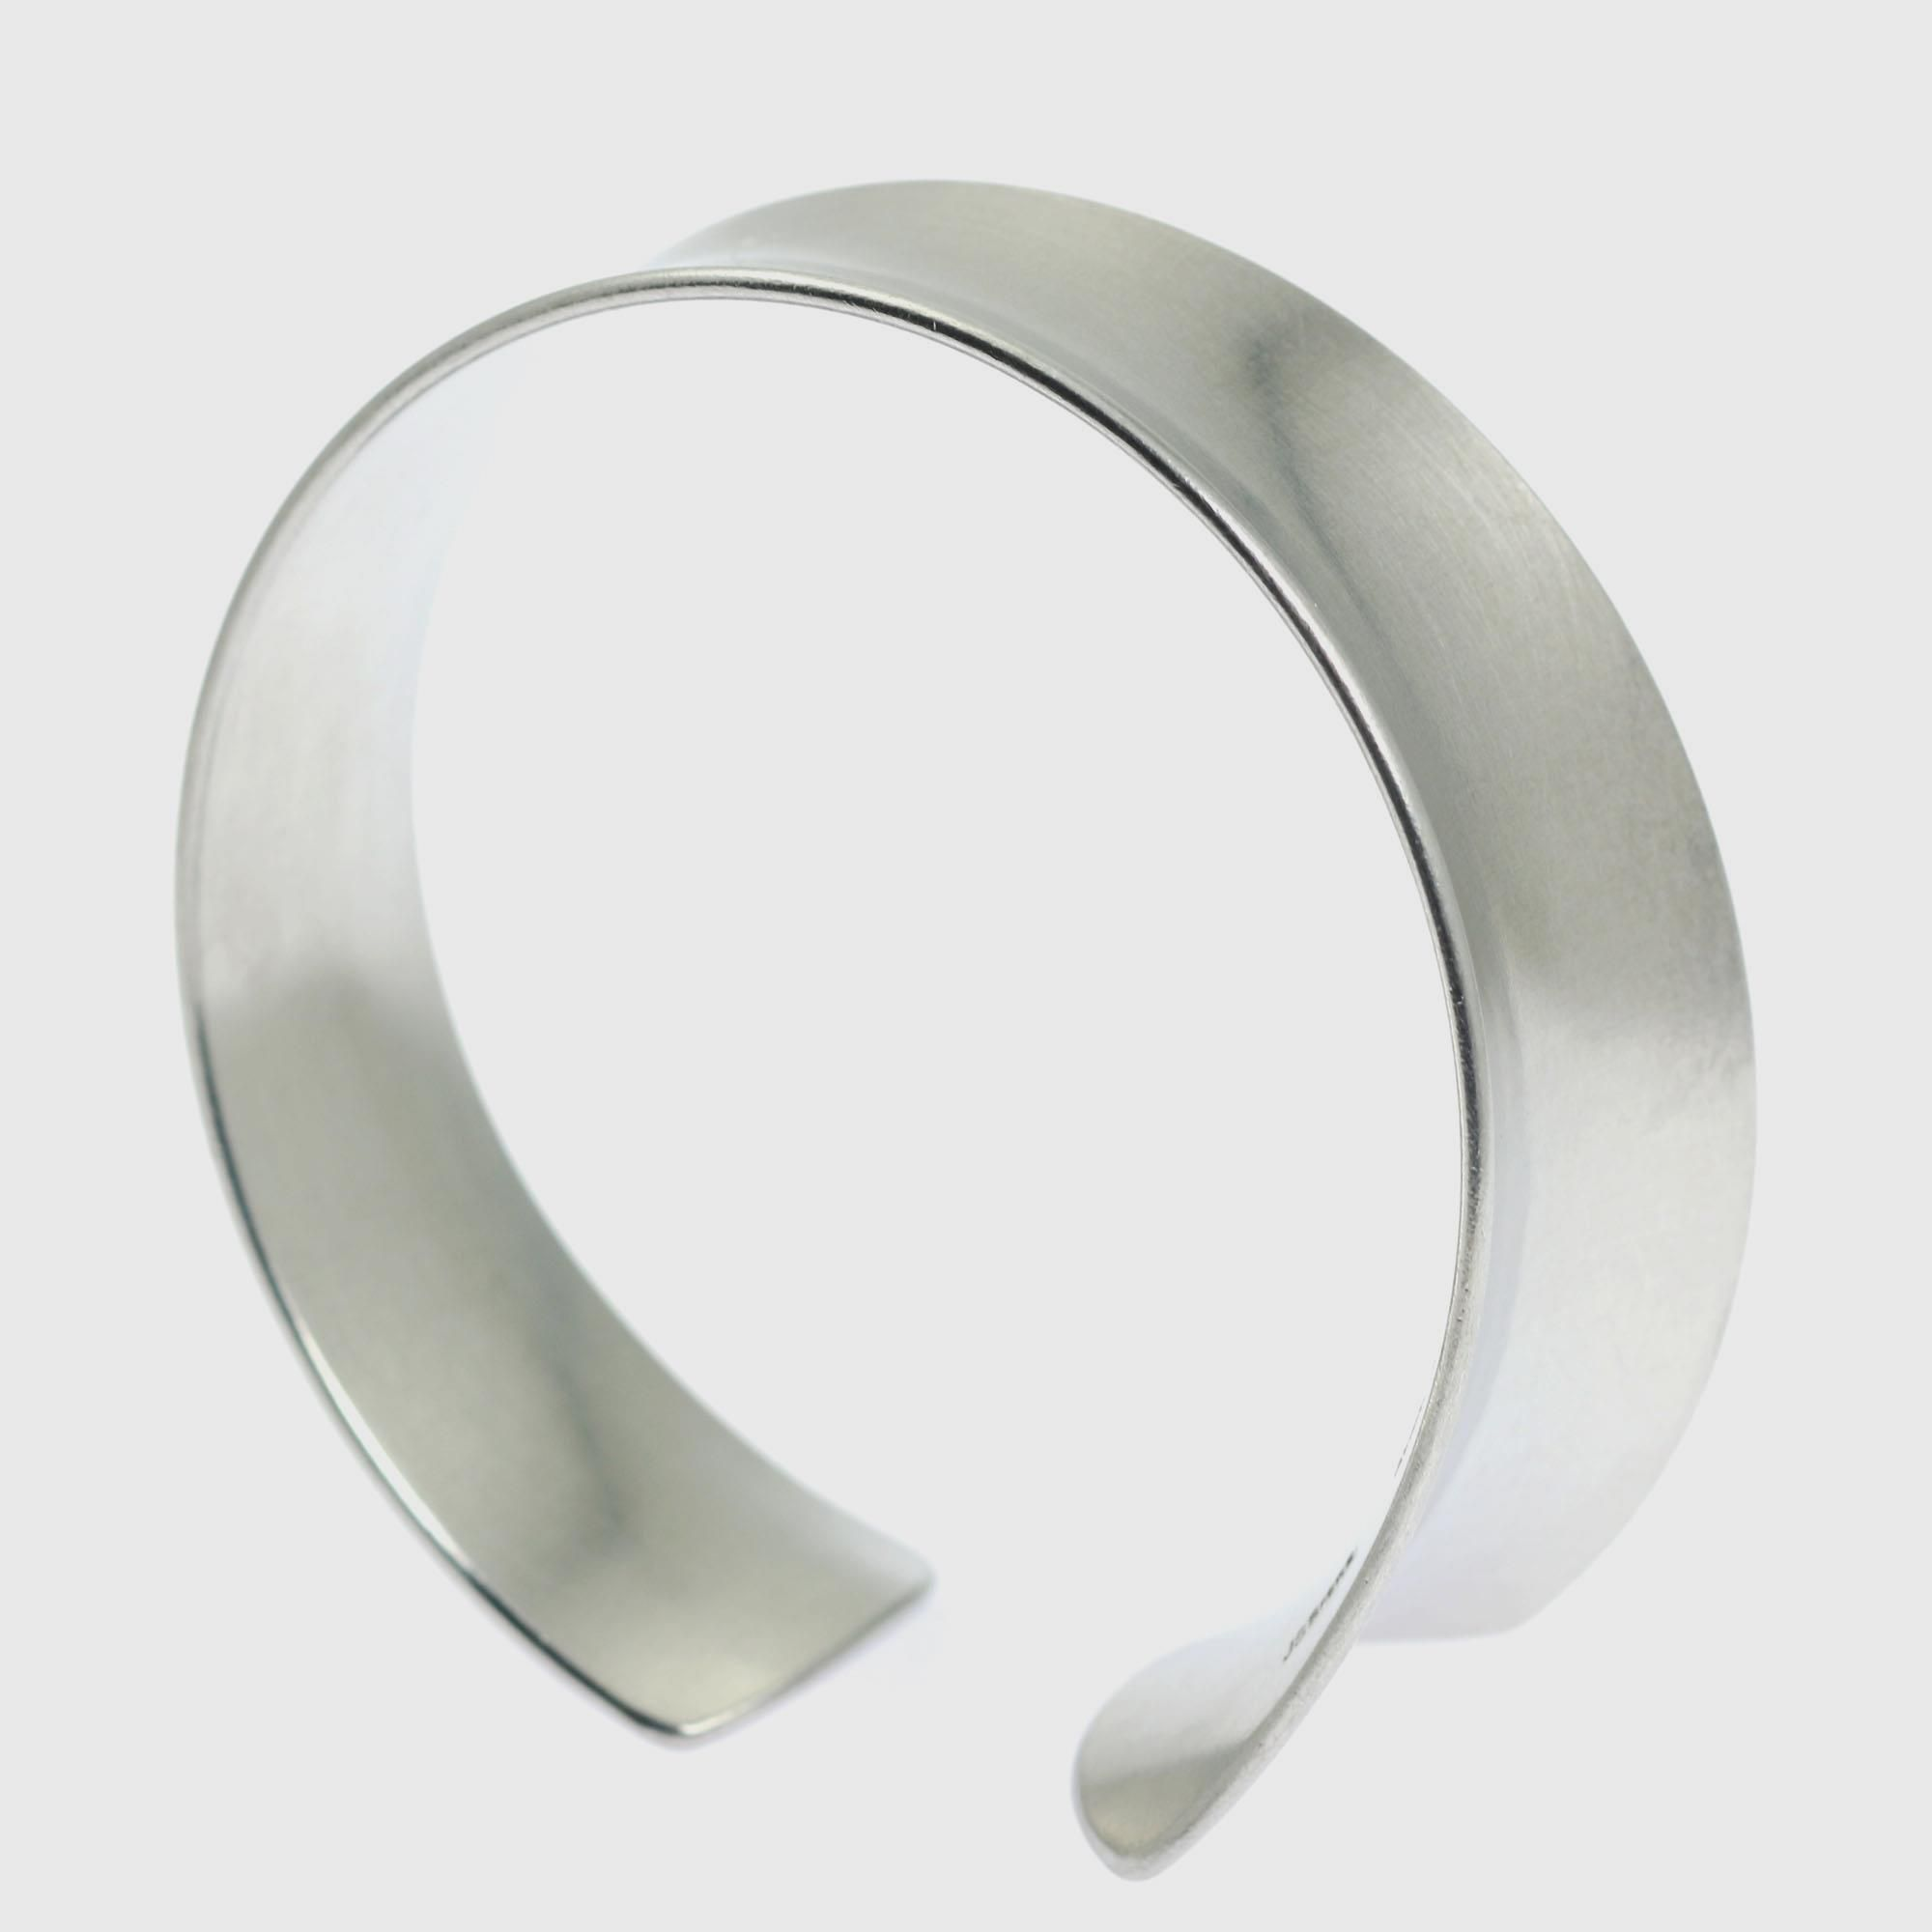 NEW! Superb Brushed Aluminum Anticlastic Bangle Bracelet  Highlighted by #AmazonHandmade #Bangles http://www.amazon.com/dp/B01AIWKOQO